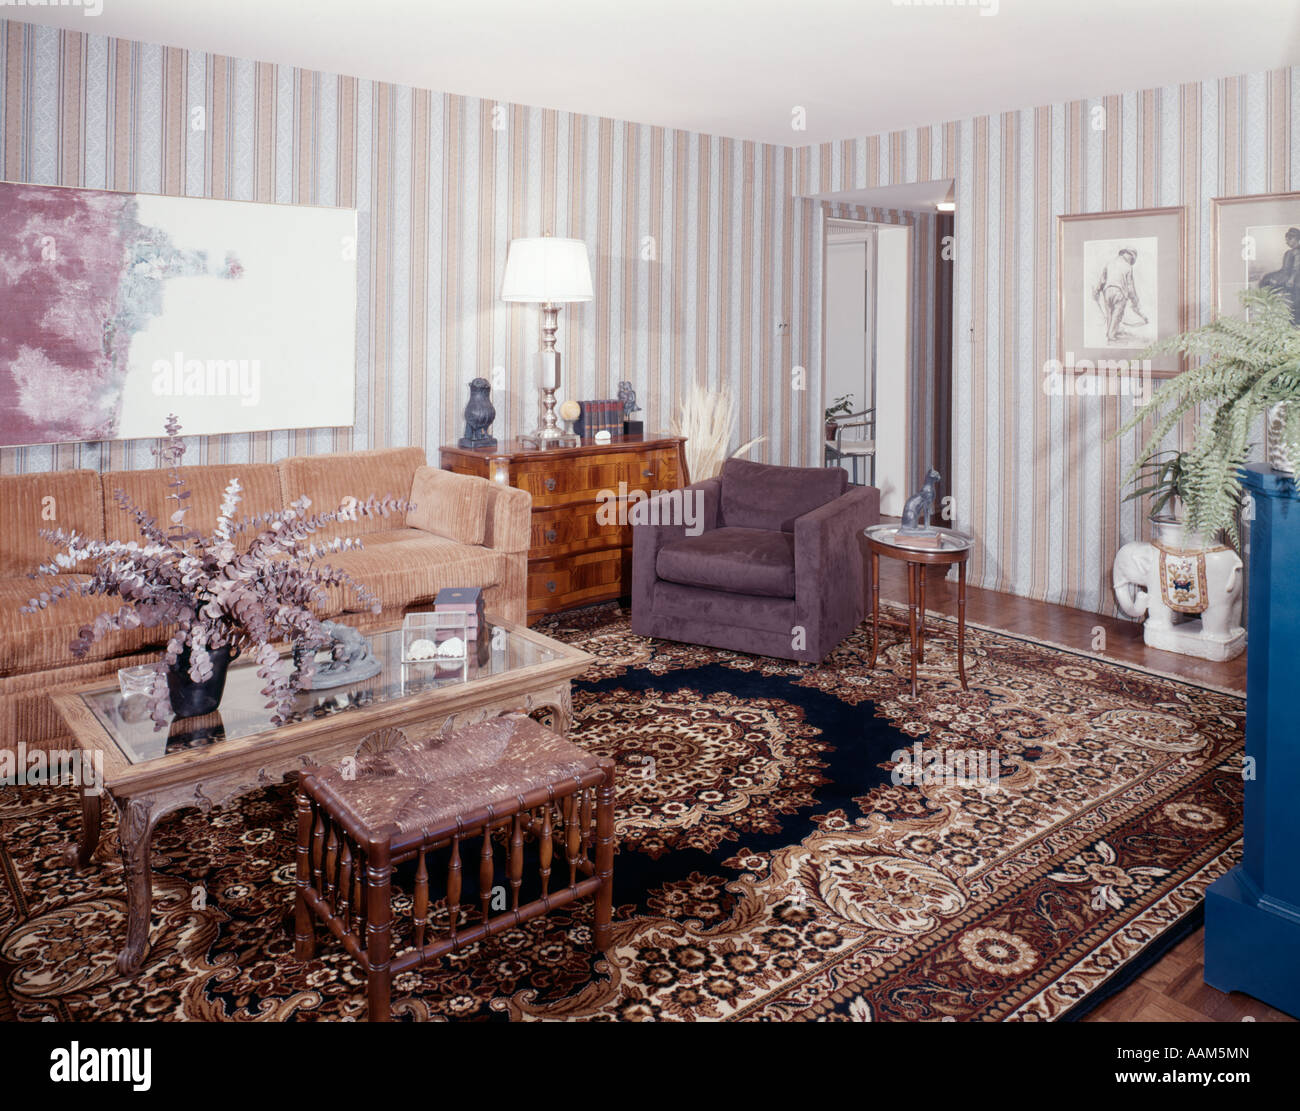 Vintage Home Decor Stockfotos & Vintage Home Decor Bilder - Alamy